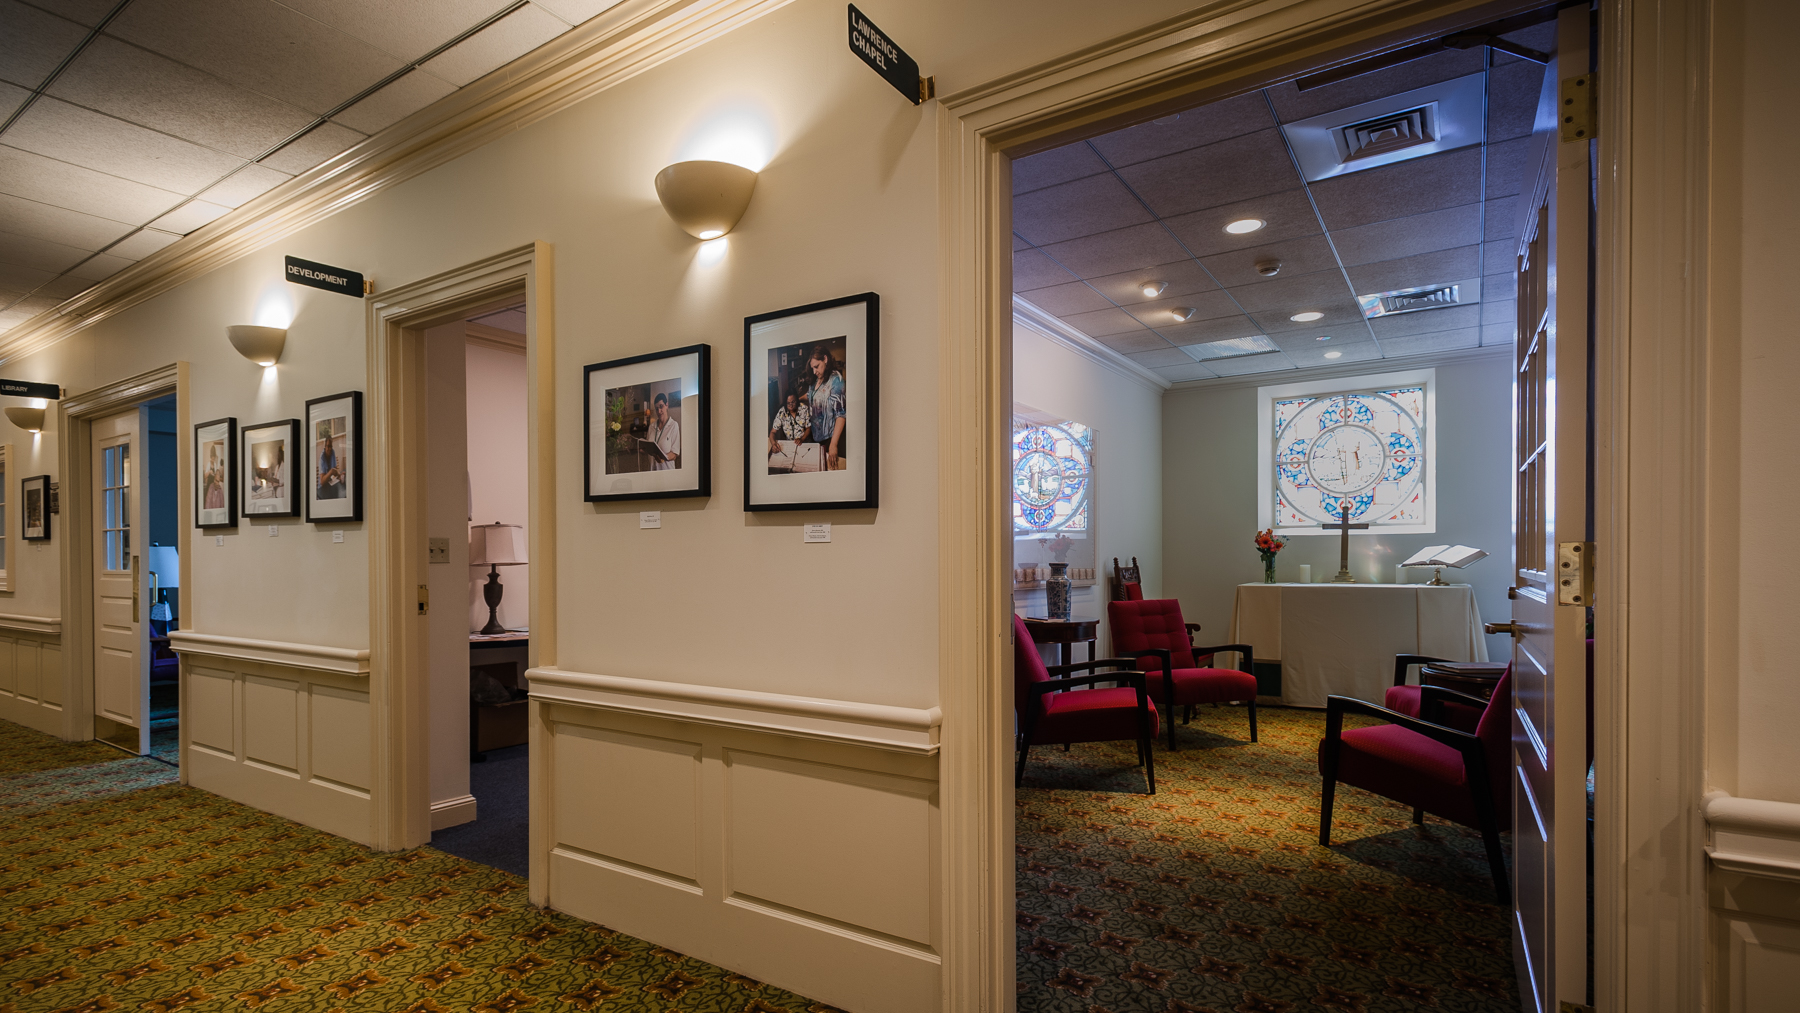 - Dedicated to its urban roots and ecumenical spirit, Sherrill House represents a century old tradition of attending to the needs of vulnerable elders and their families.